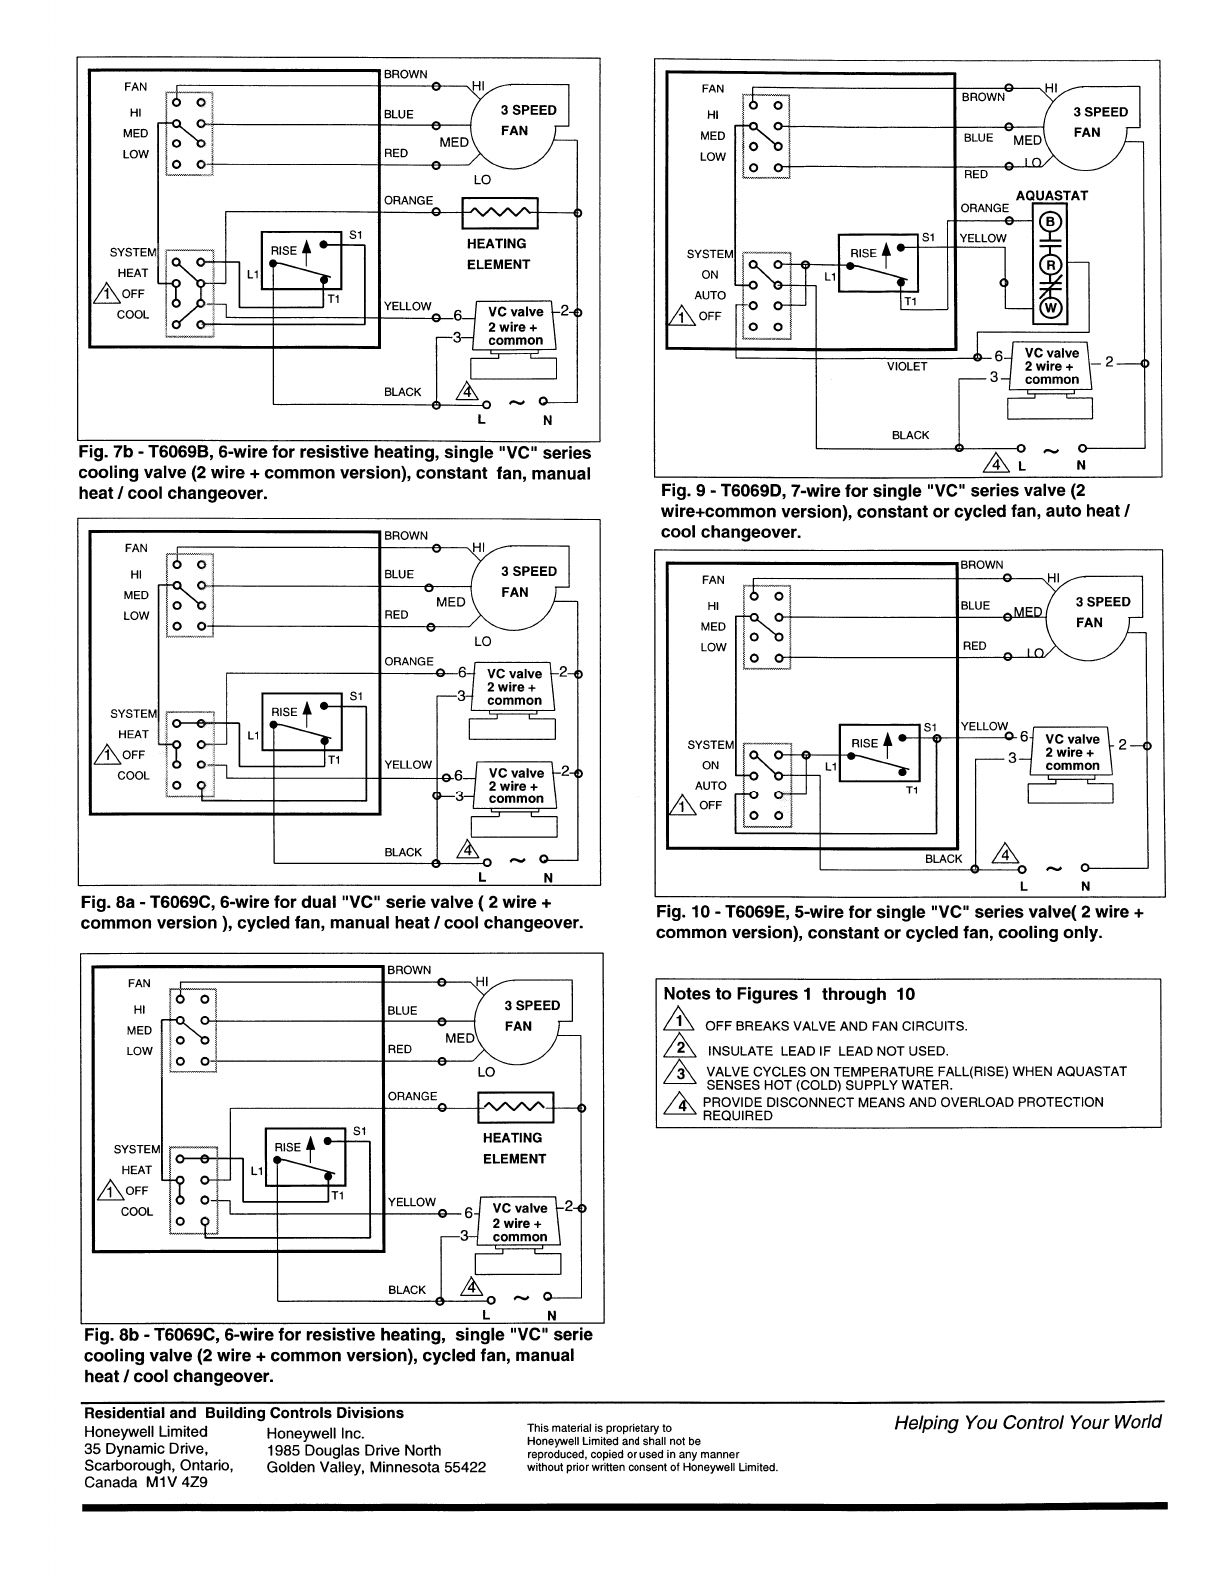 Wiring Diagram For Honeywell Tb6575a1000 Electrical Diagrams 2 Wire Thermostat Installing A Suite Pro To Replace Wires So I